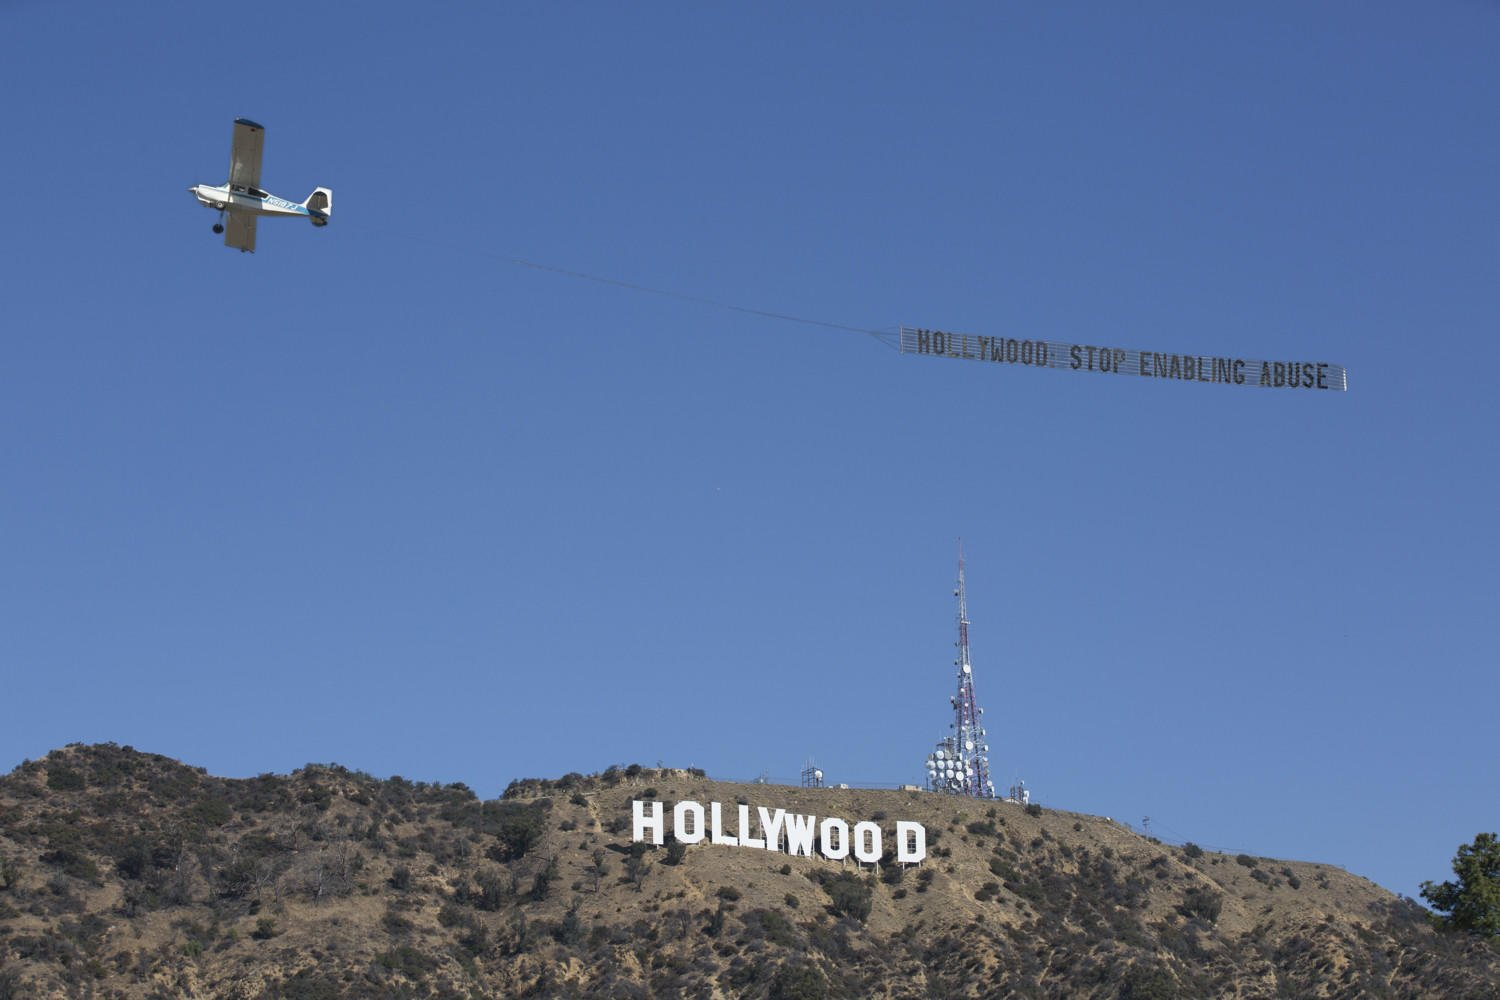 Banner seen over Los Angeles demands Hollywood 'stop enabling abuse' https://t.co/UmSC1sg0Np https://t.co/r4ZGMKCY3j